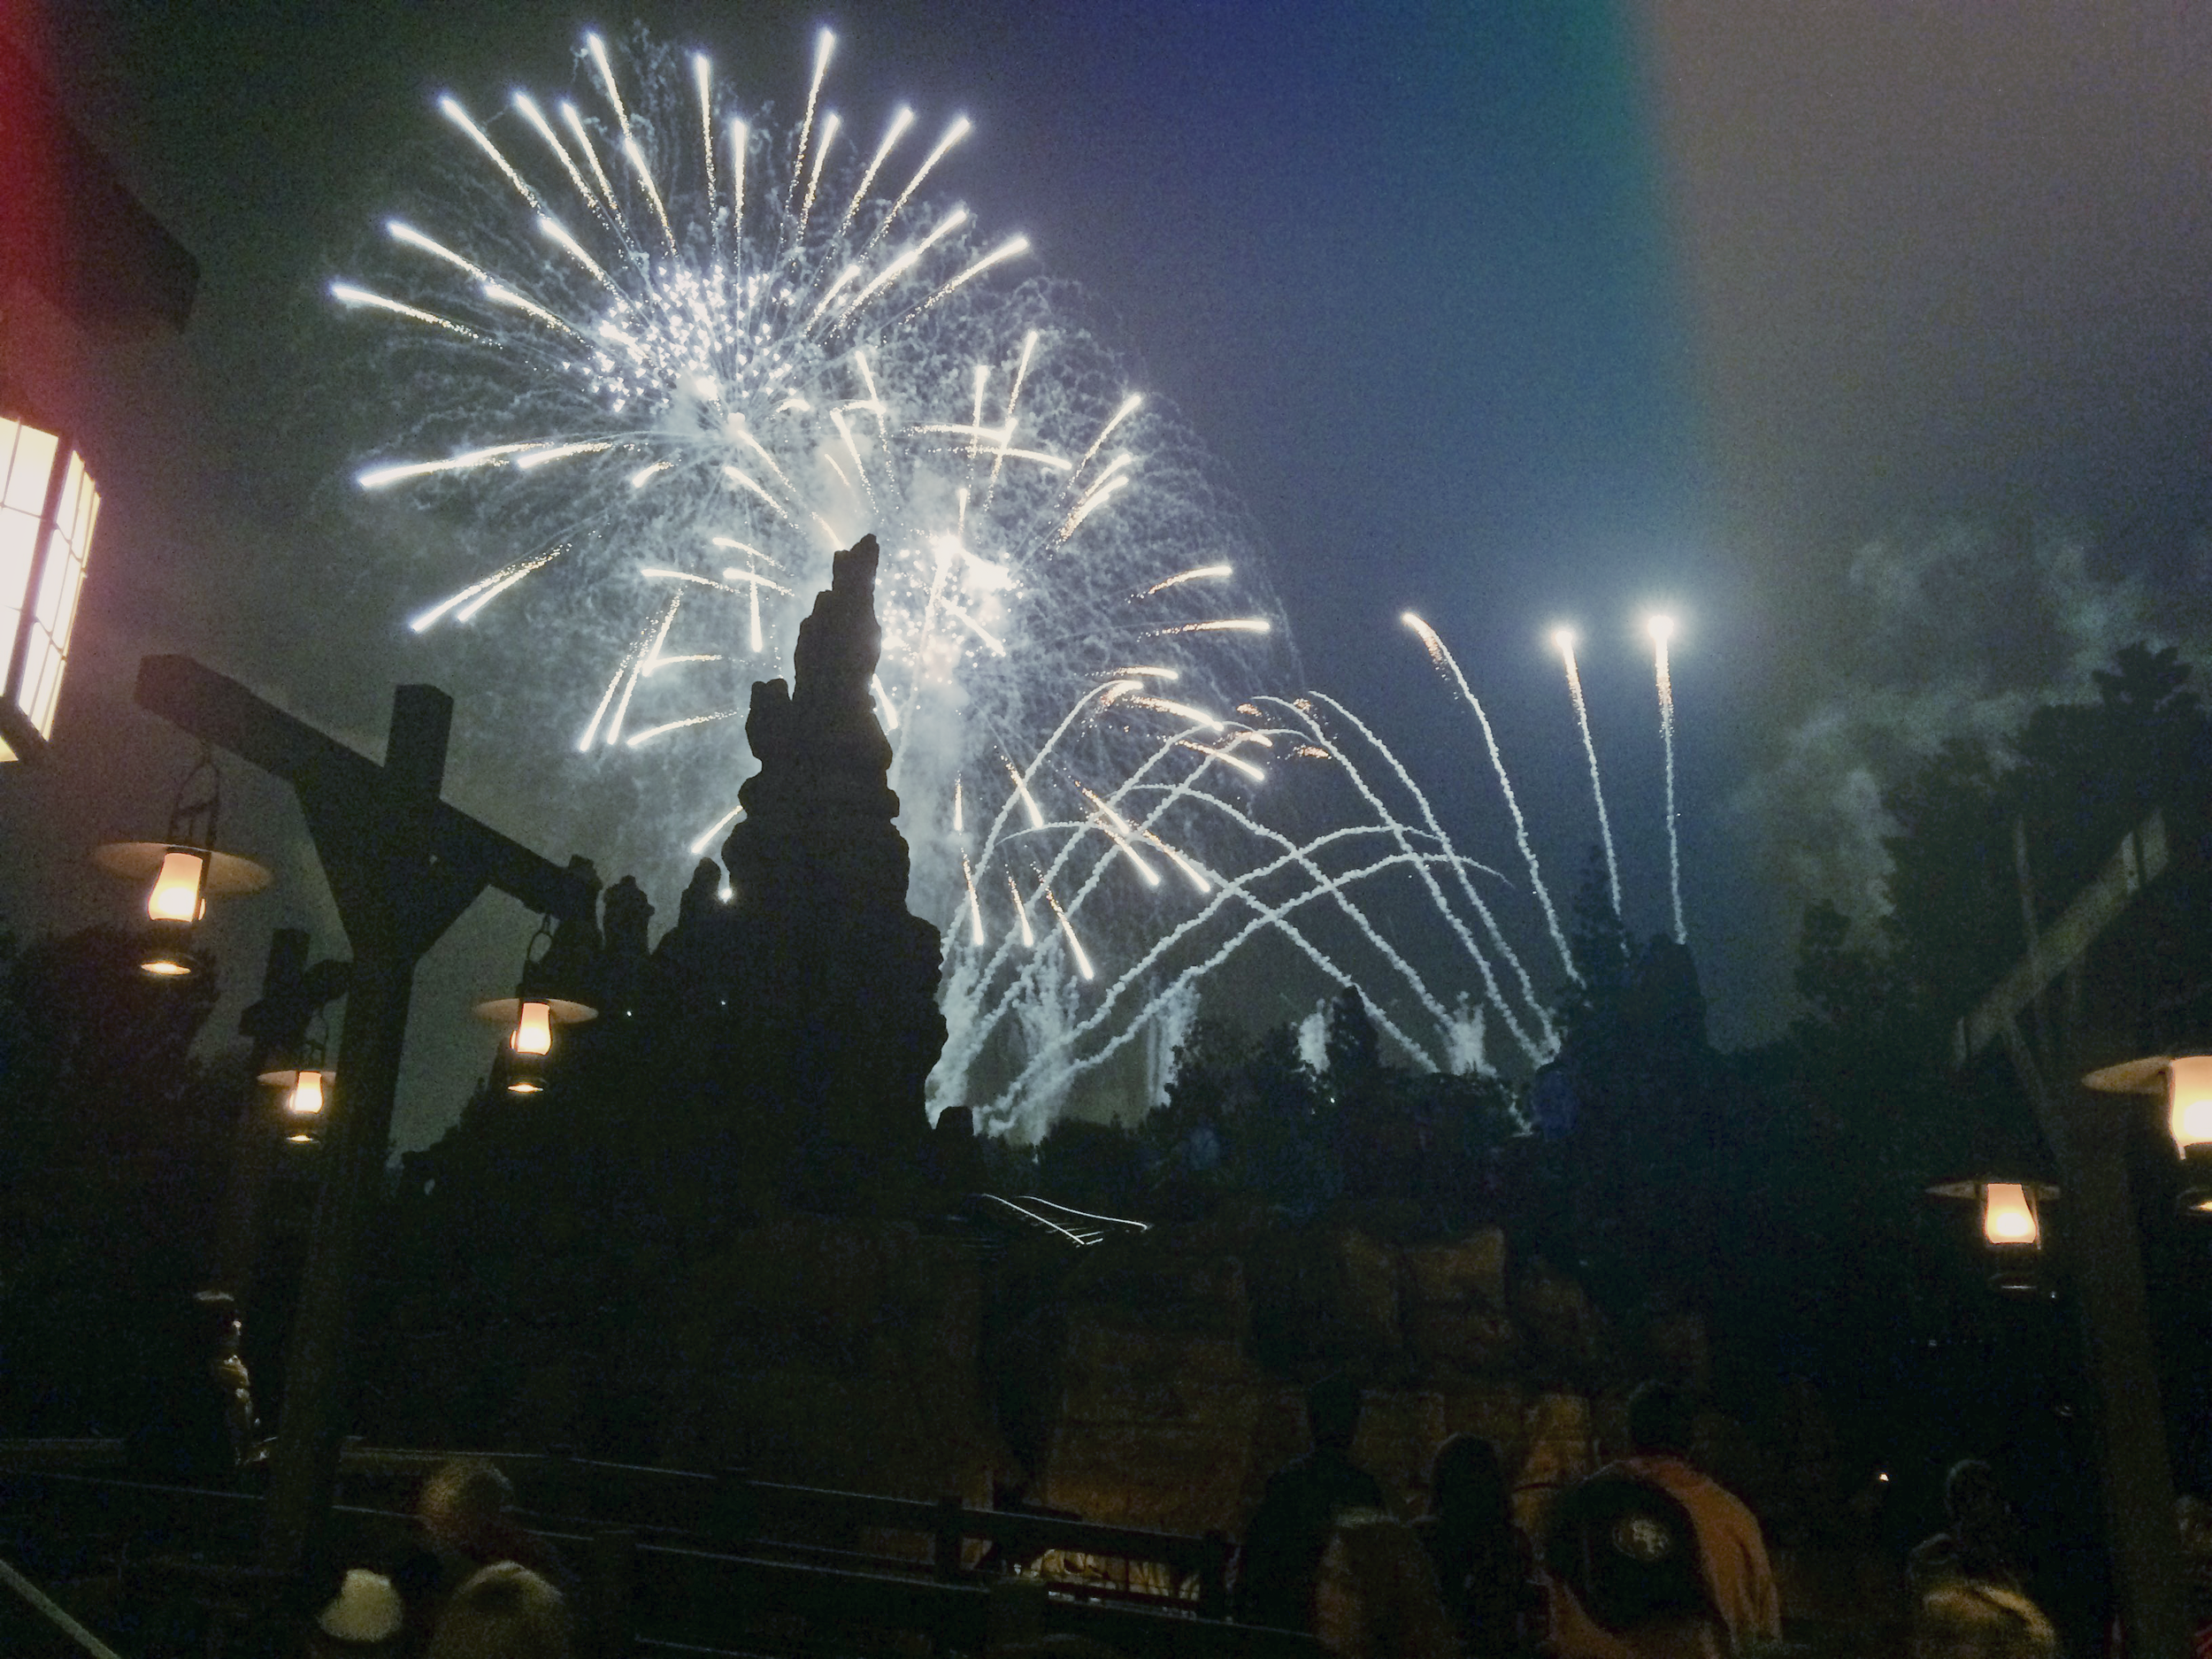 A lot of the lines were still pretty long, so we just rounded out our night on Thunder Mountain.